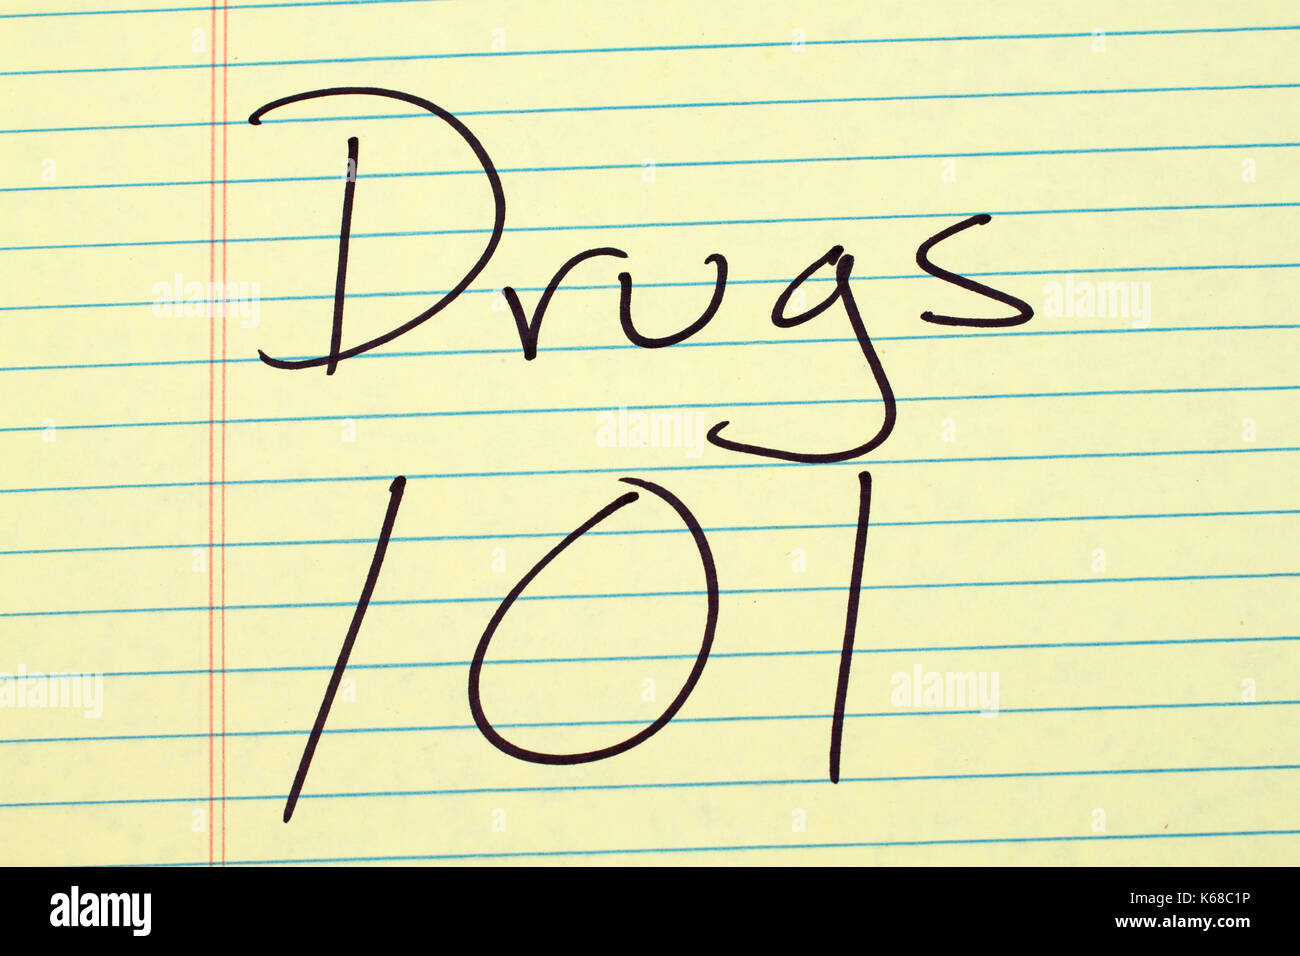 The words 'Drugs 101' on a yellow legal pad - Stock Image